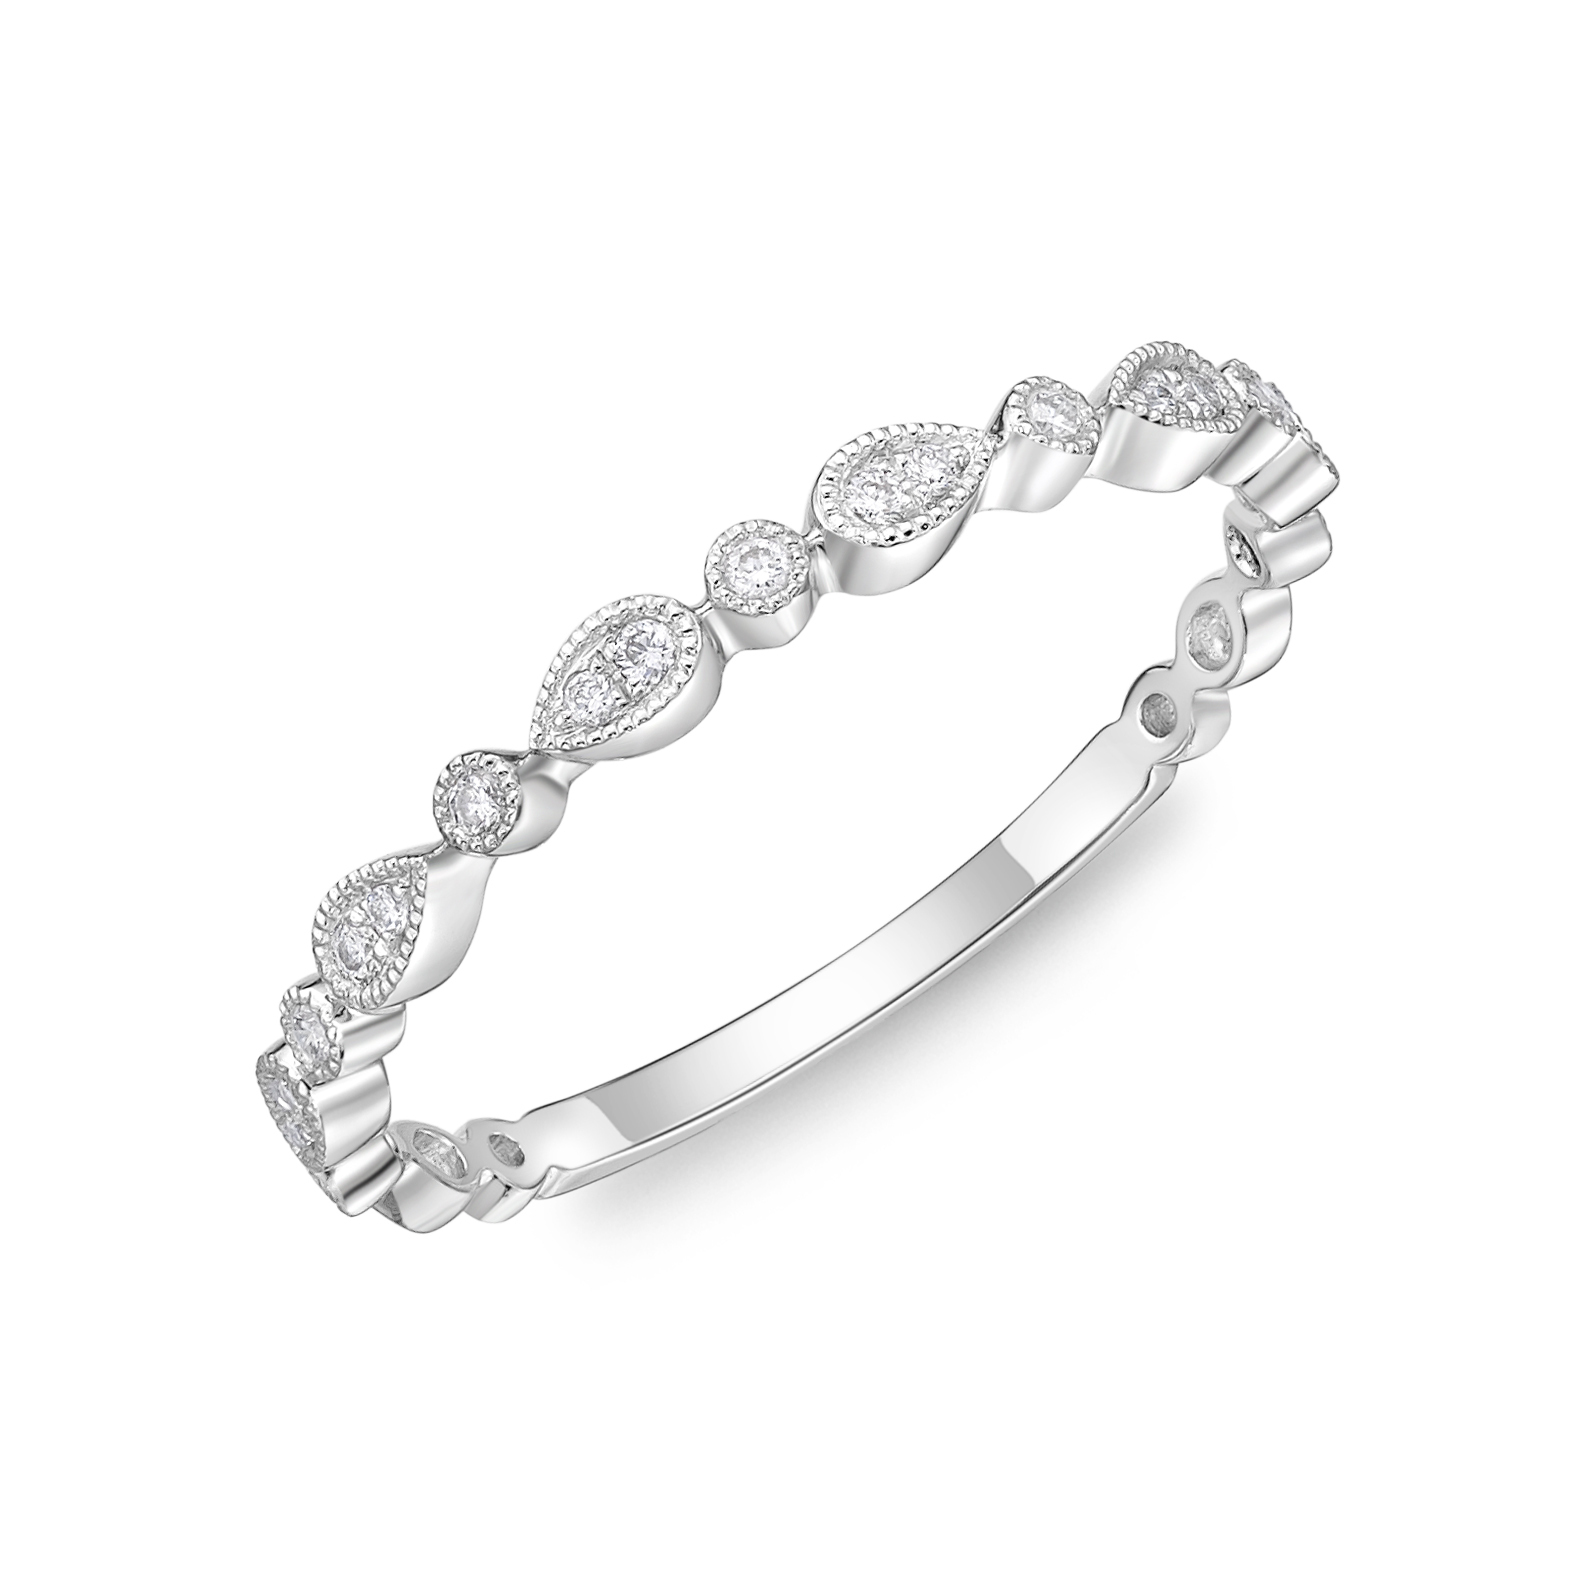 Memoire 18ct White Gold Vintage Round & Illusion Pear Stack Ring with 19 Diamonds